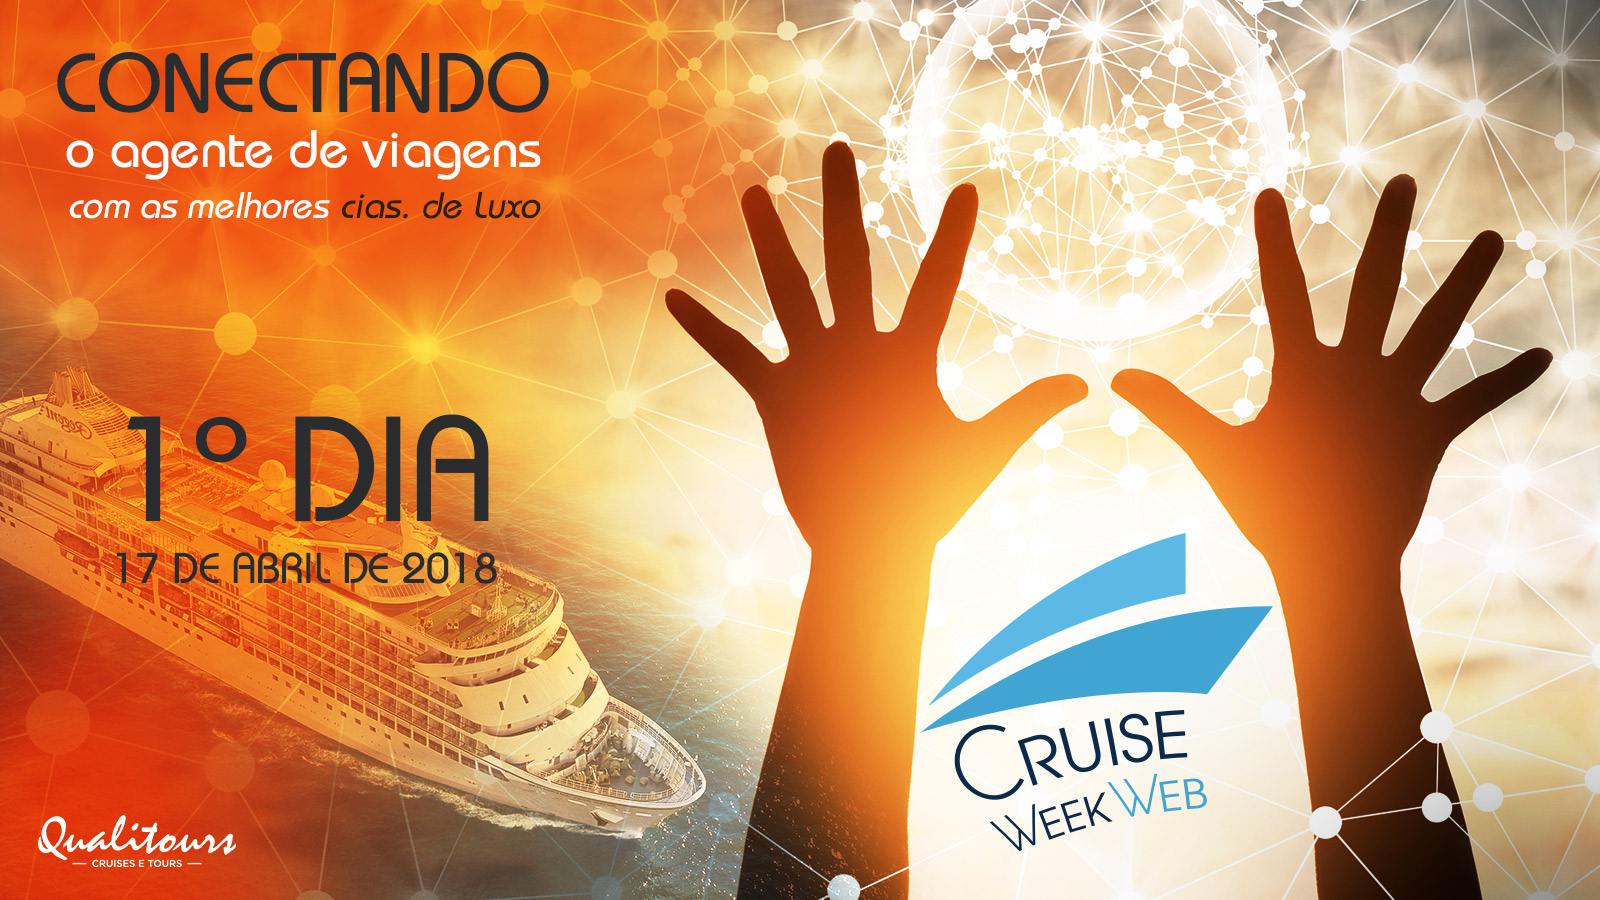 Cruise Week Web: 1º Dia